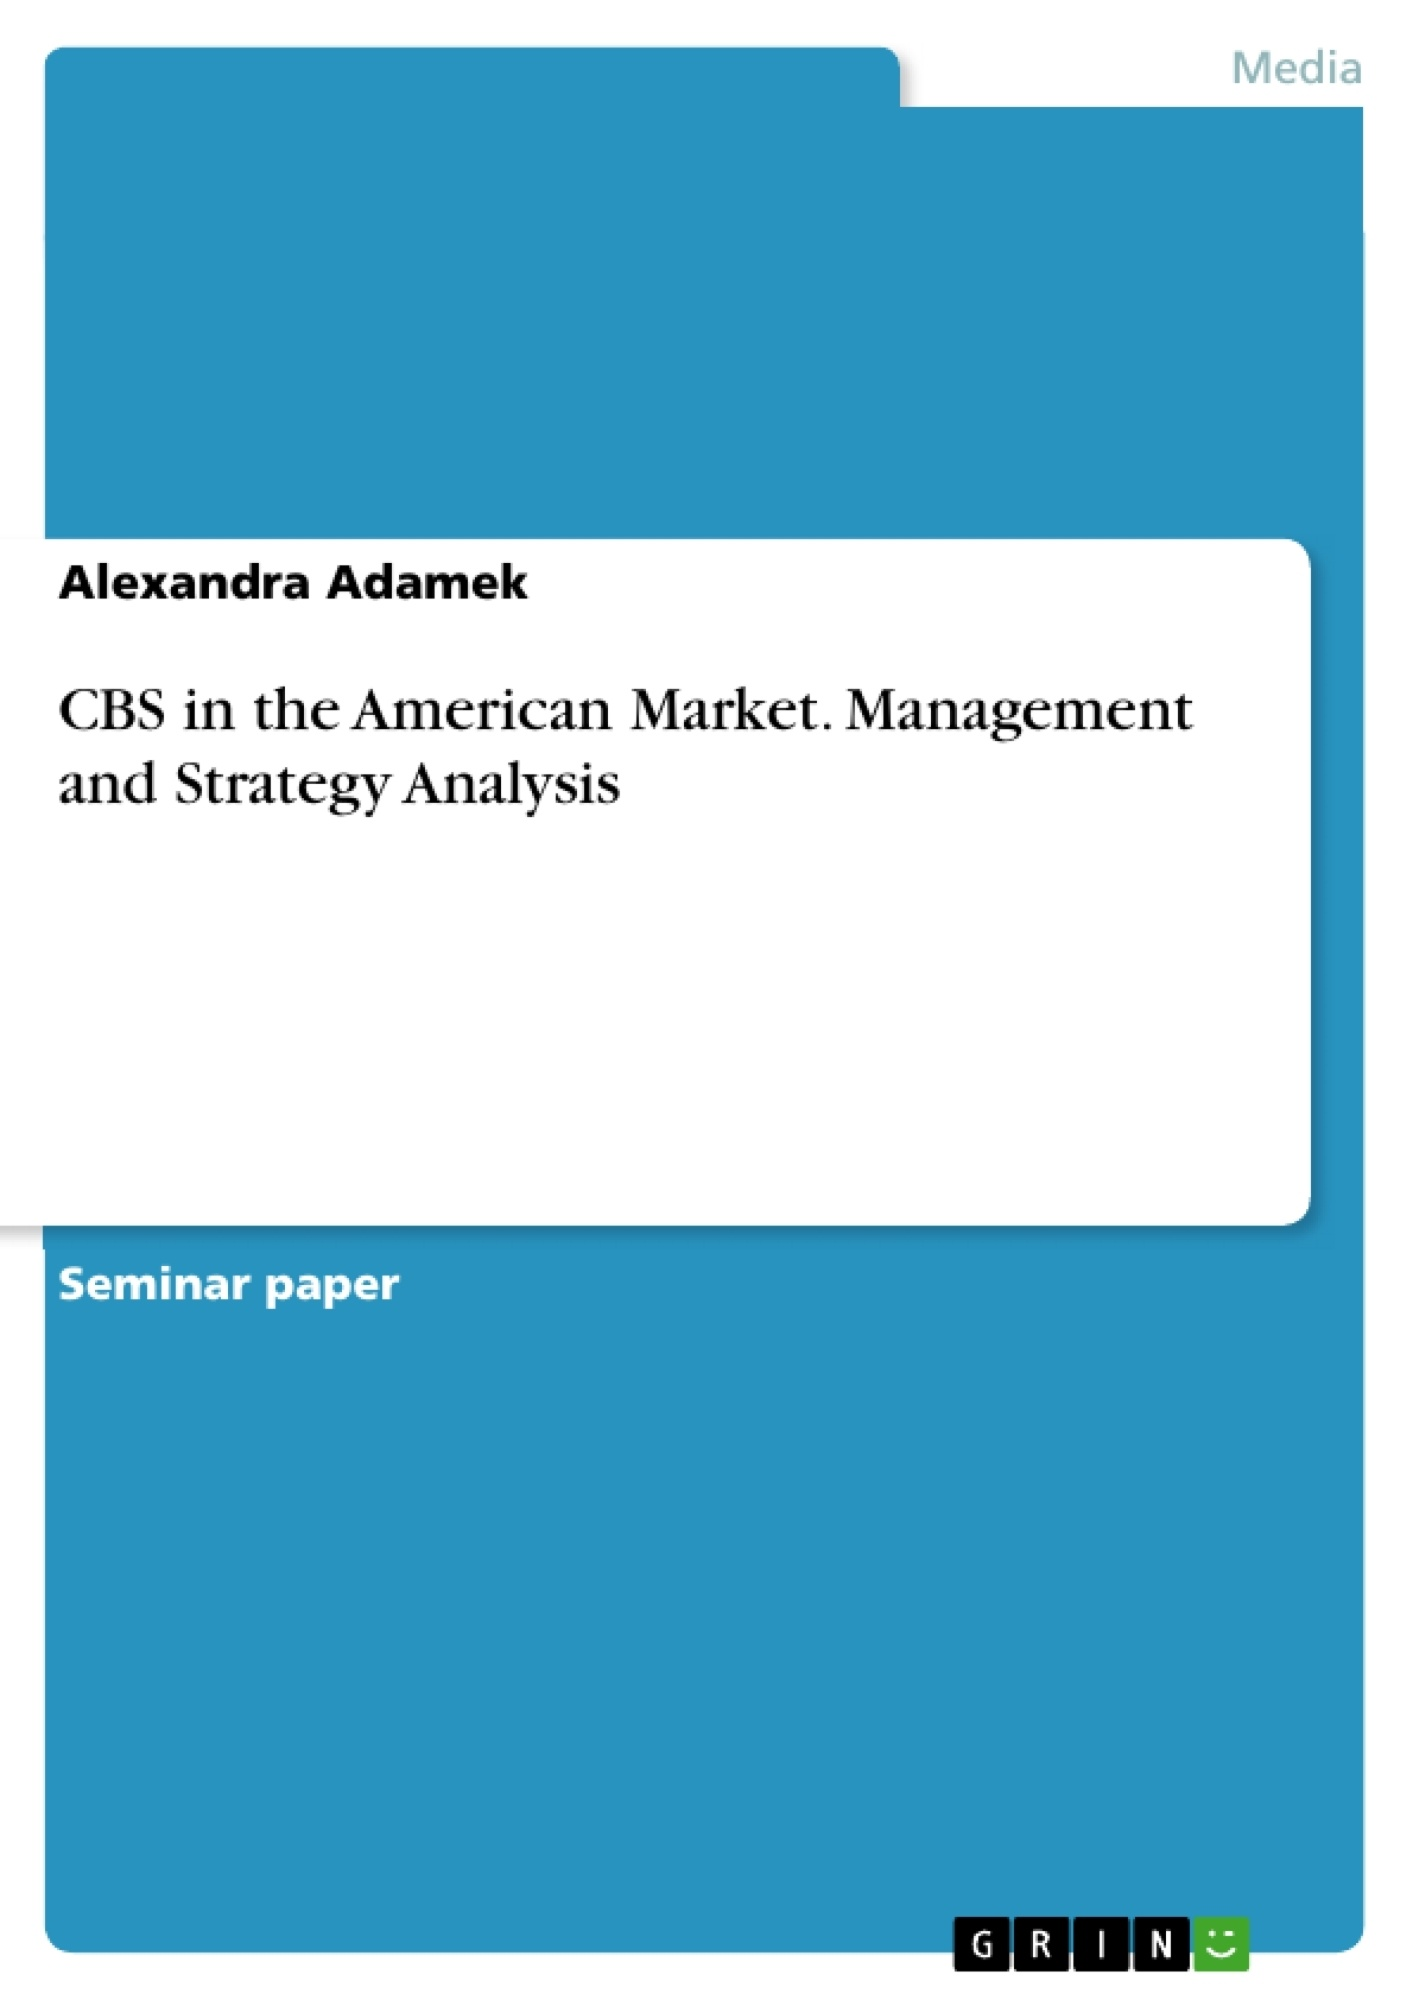 Title: CBS in the American Market. Management and Strategy Analysis